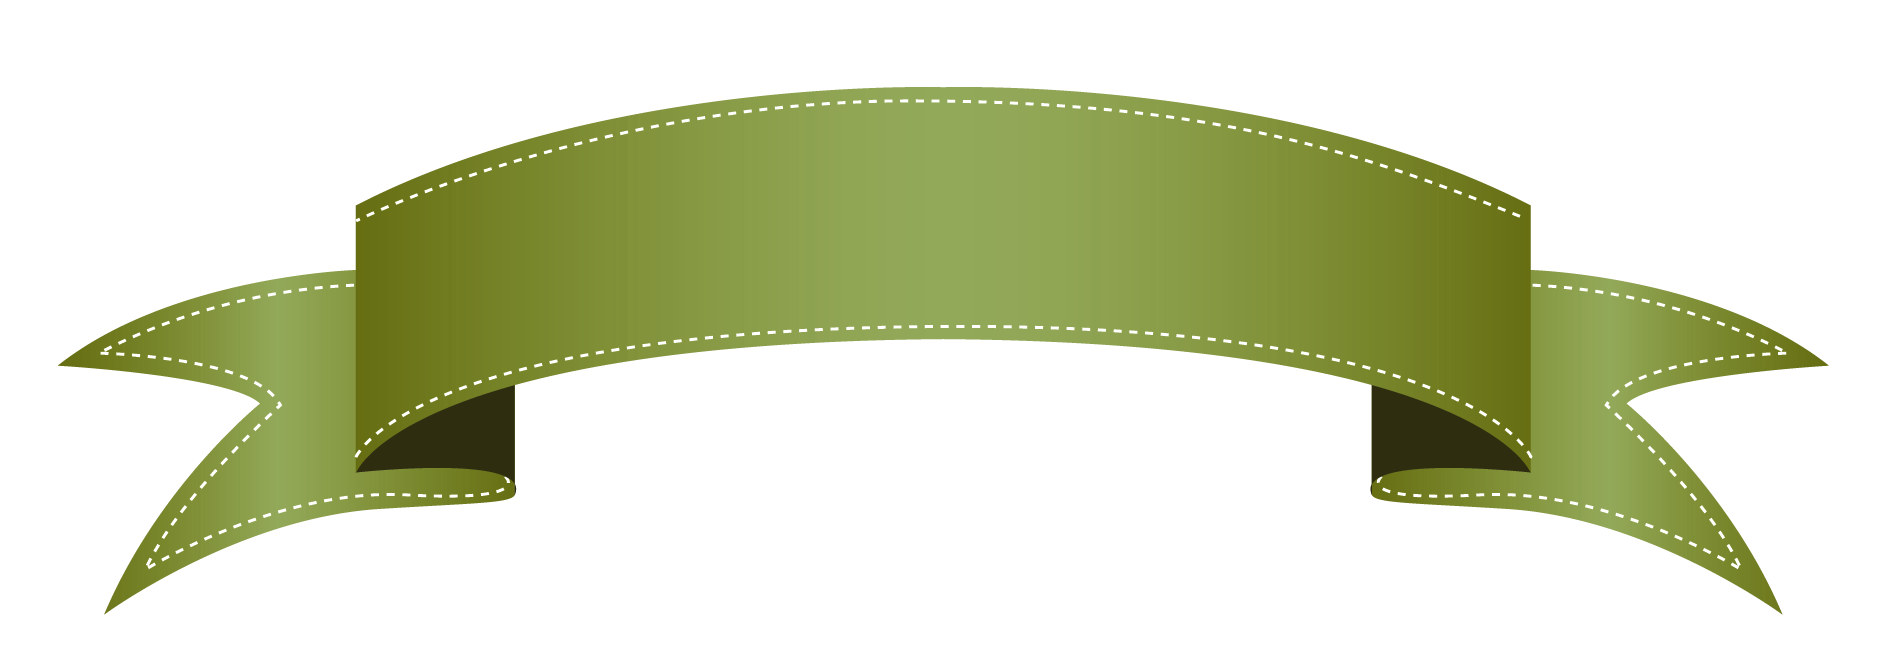 green ribbon banner png